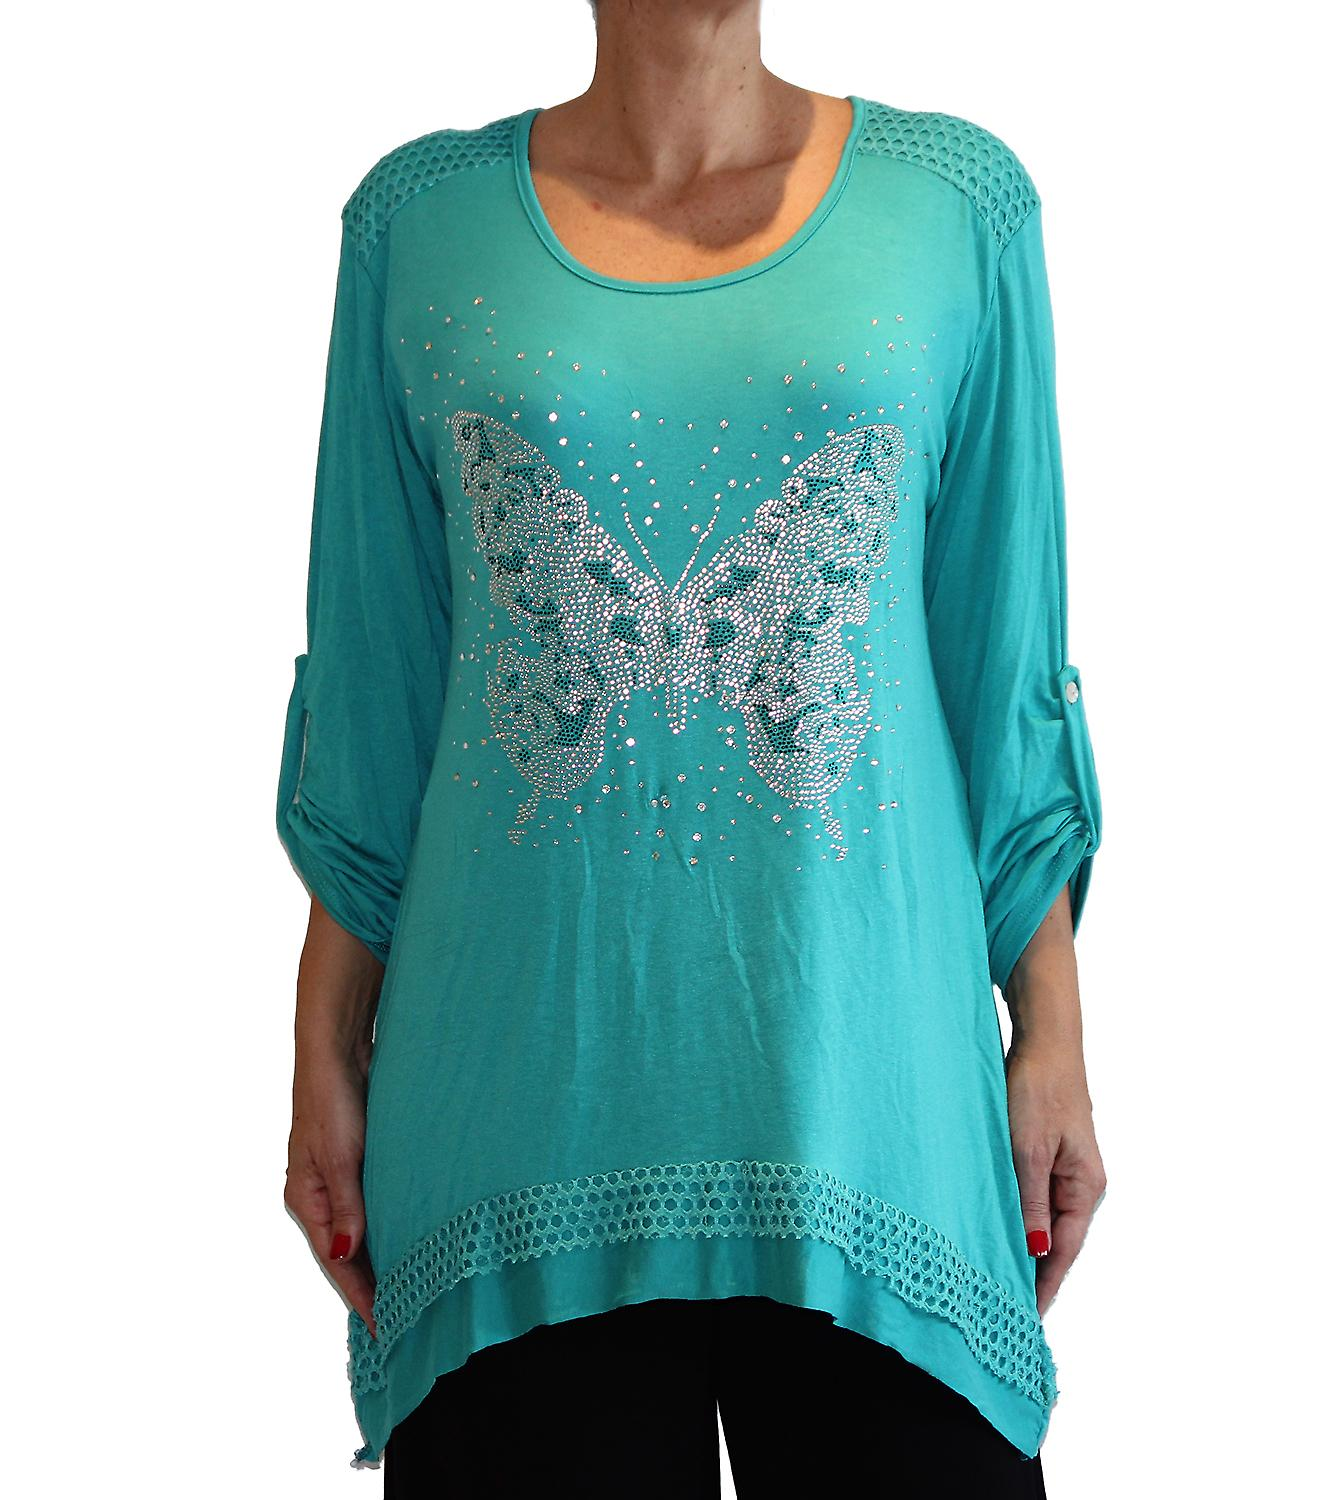 Waooh - Fashion - long-sleeved tunic pattern rhinestone butterfly